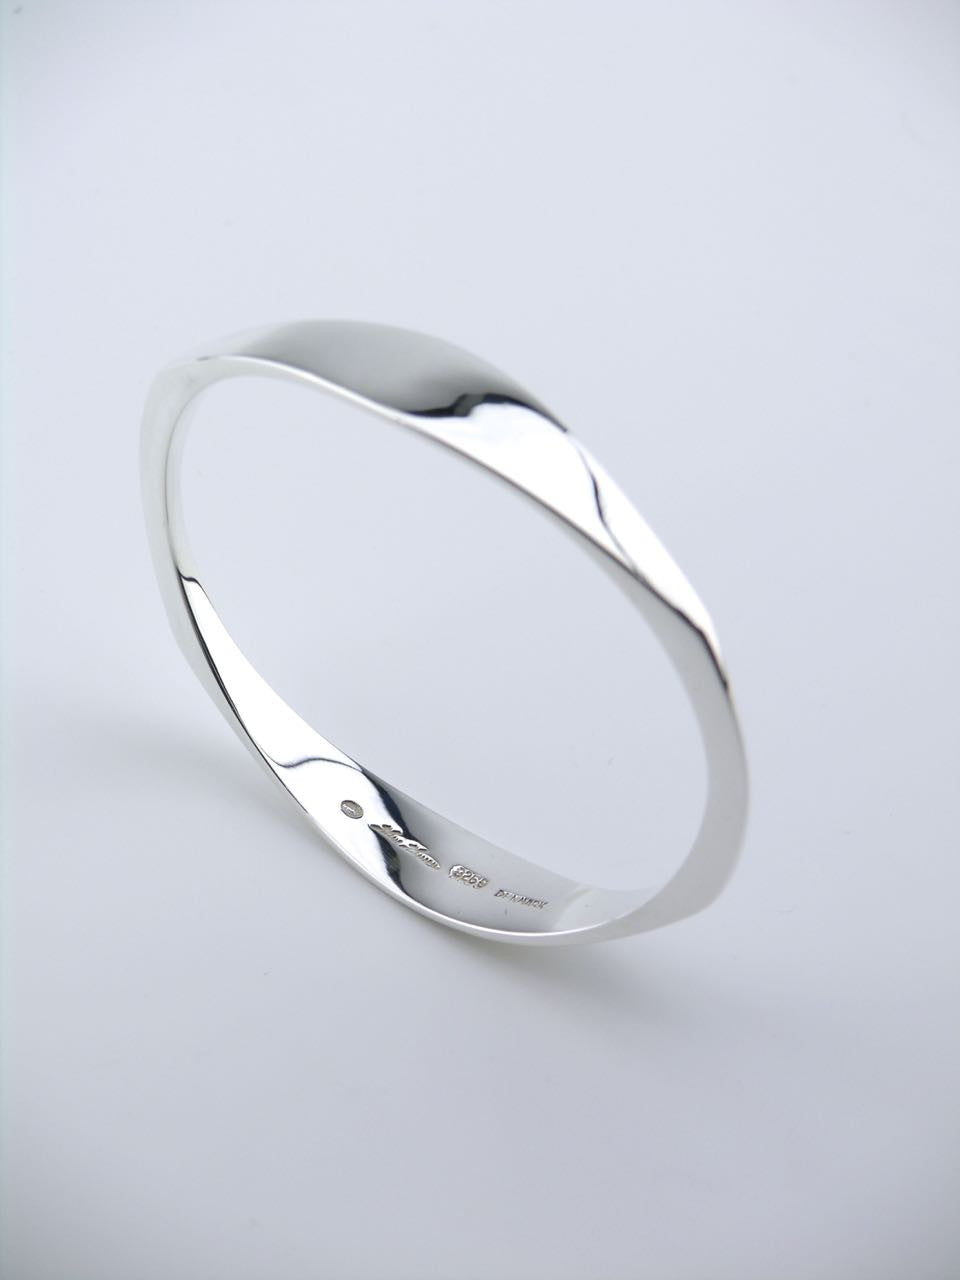 Georg Jensen silver oval shaped bangle